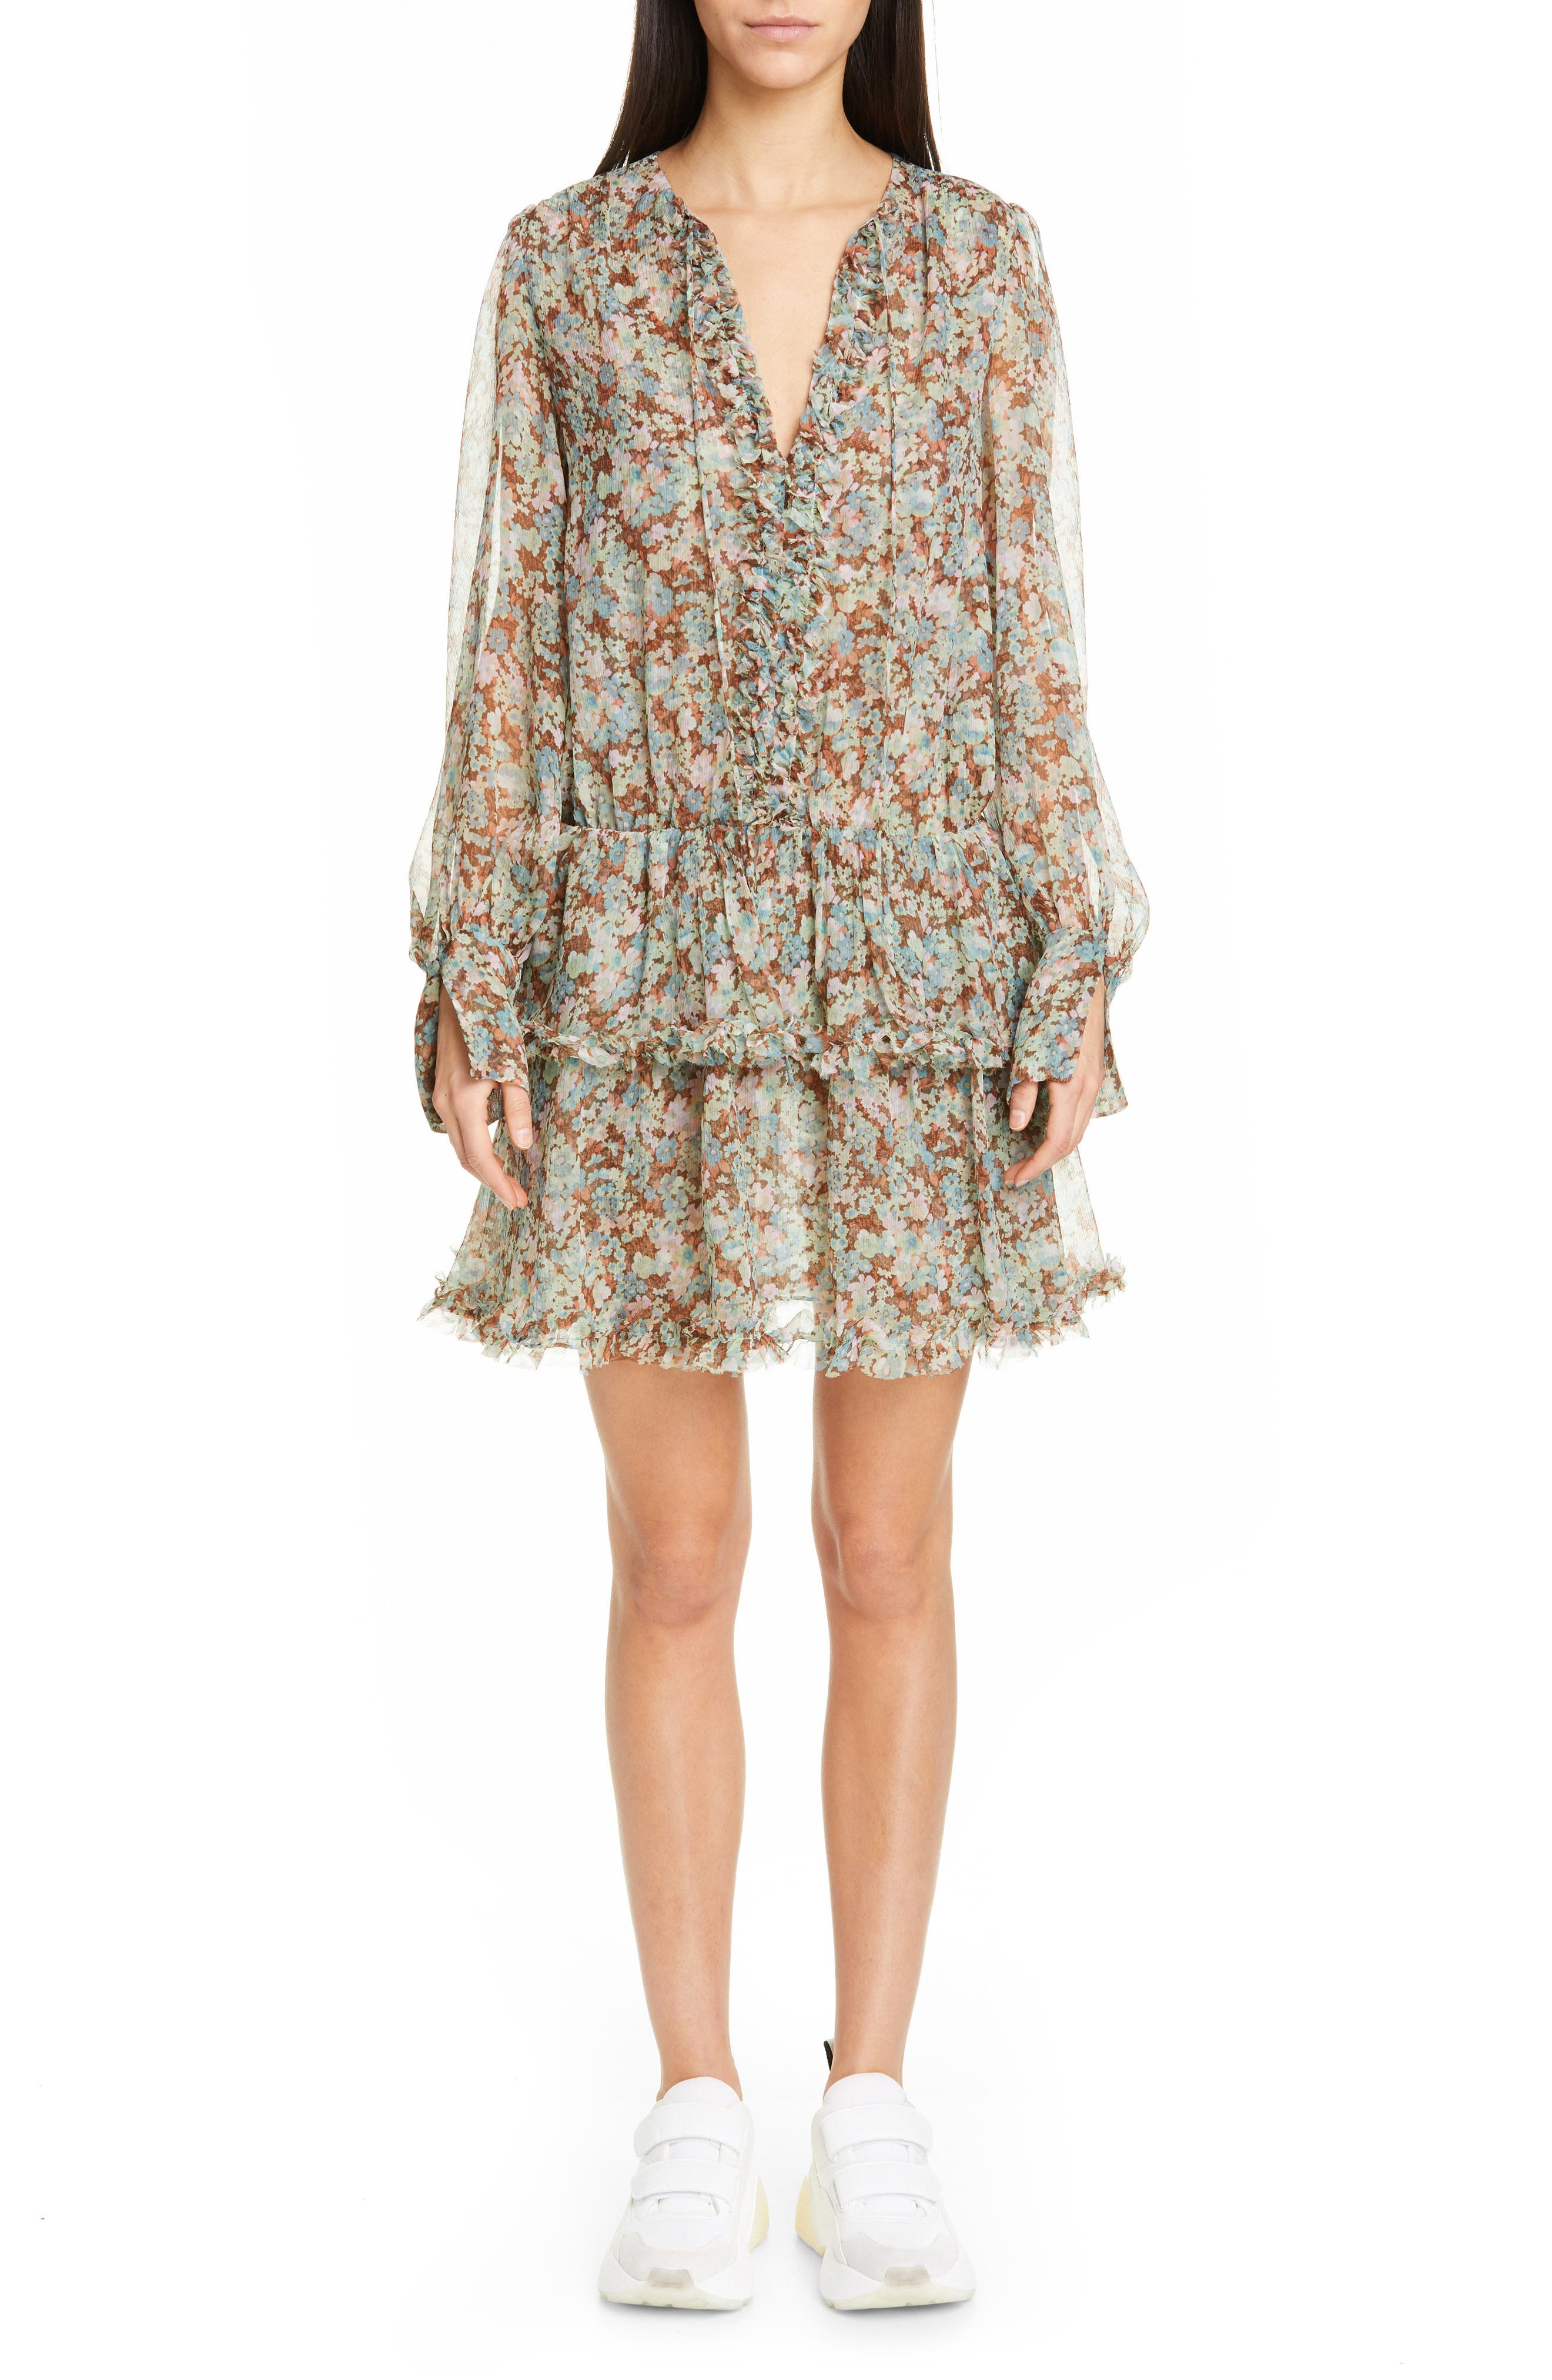 Stella Mccartney Meadow Floral Print Silk Dress, US / 44 IT - Green